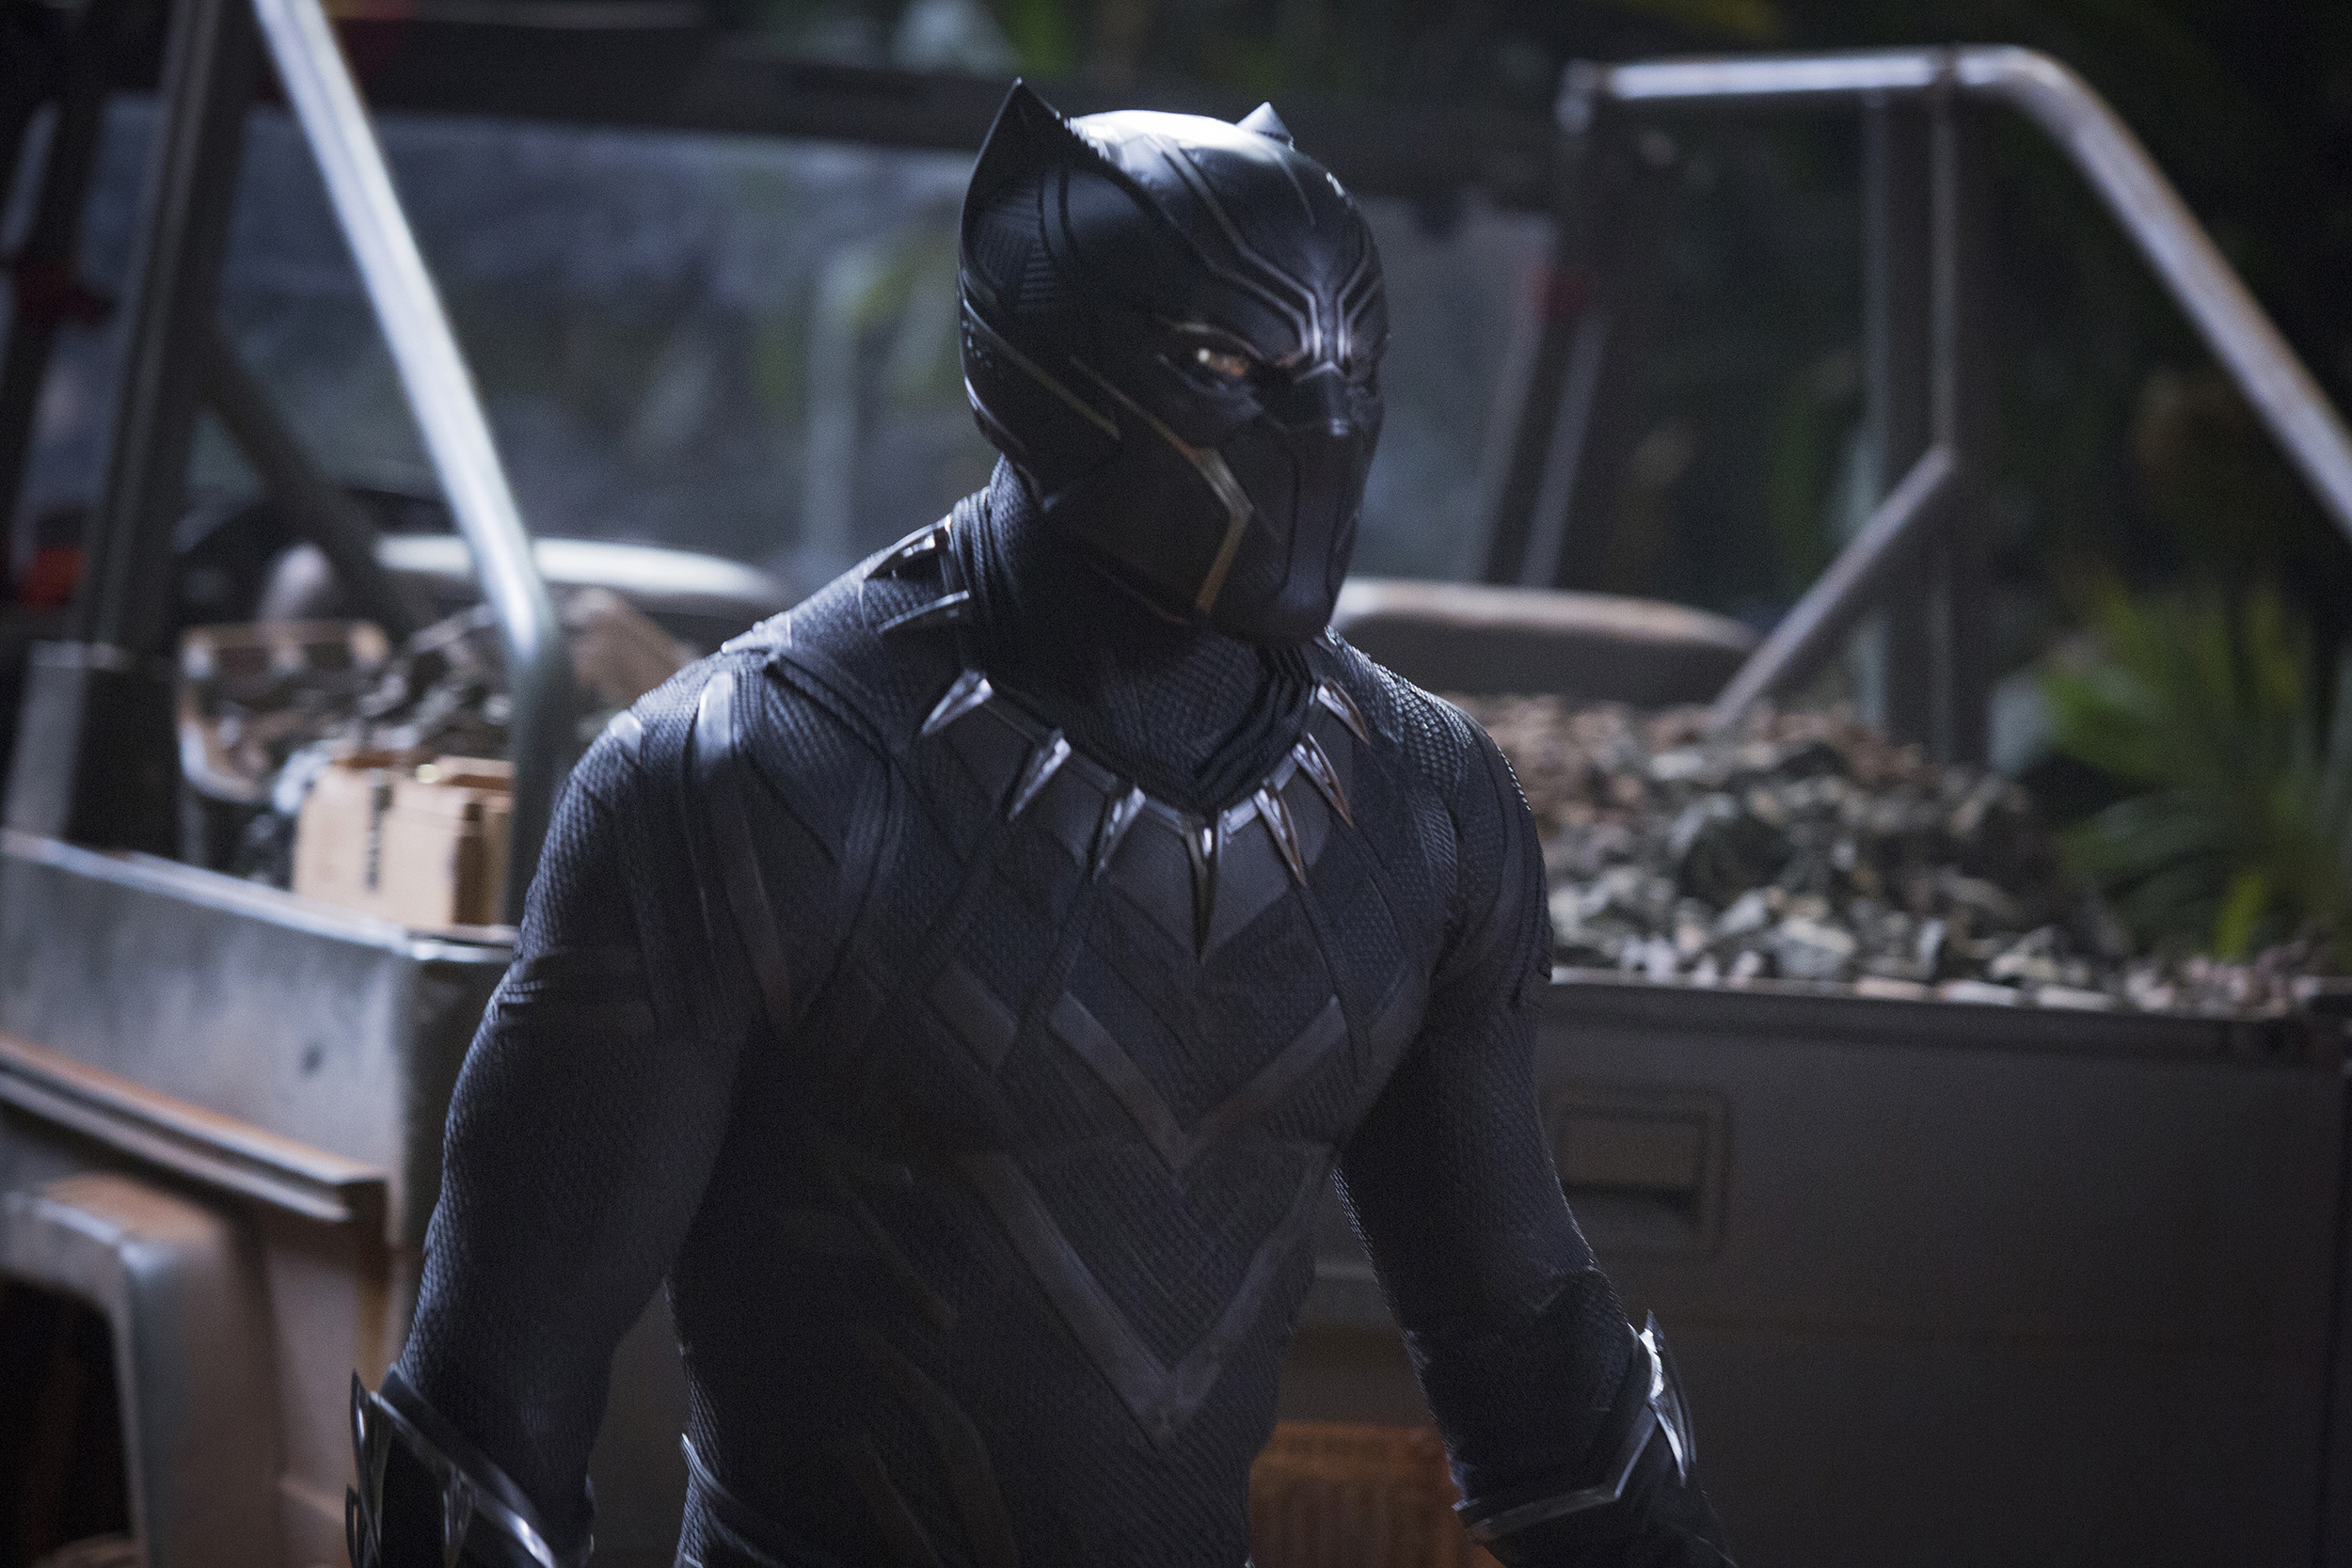 Black Panther S Wakanda Sheds Light On Black Excellence